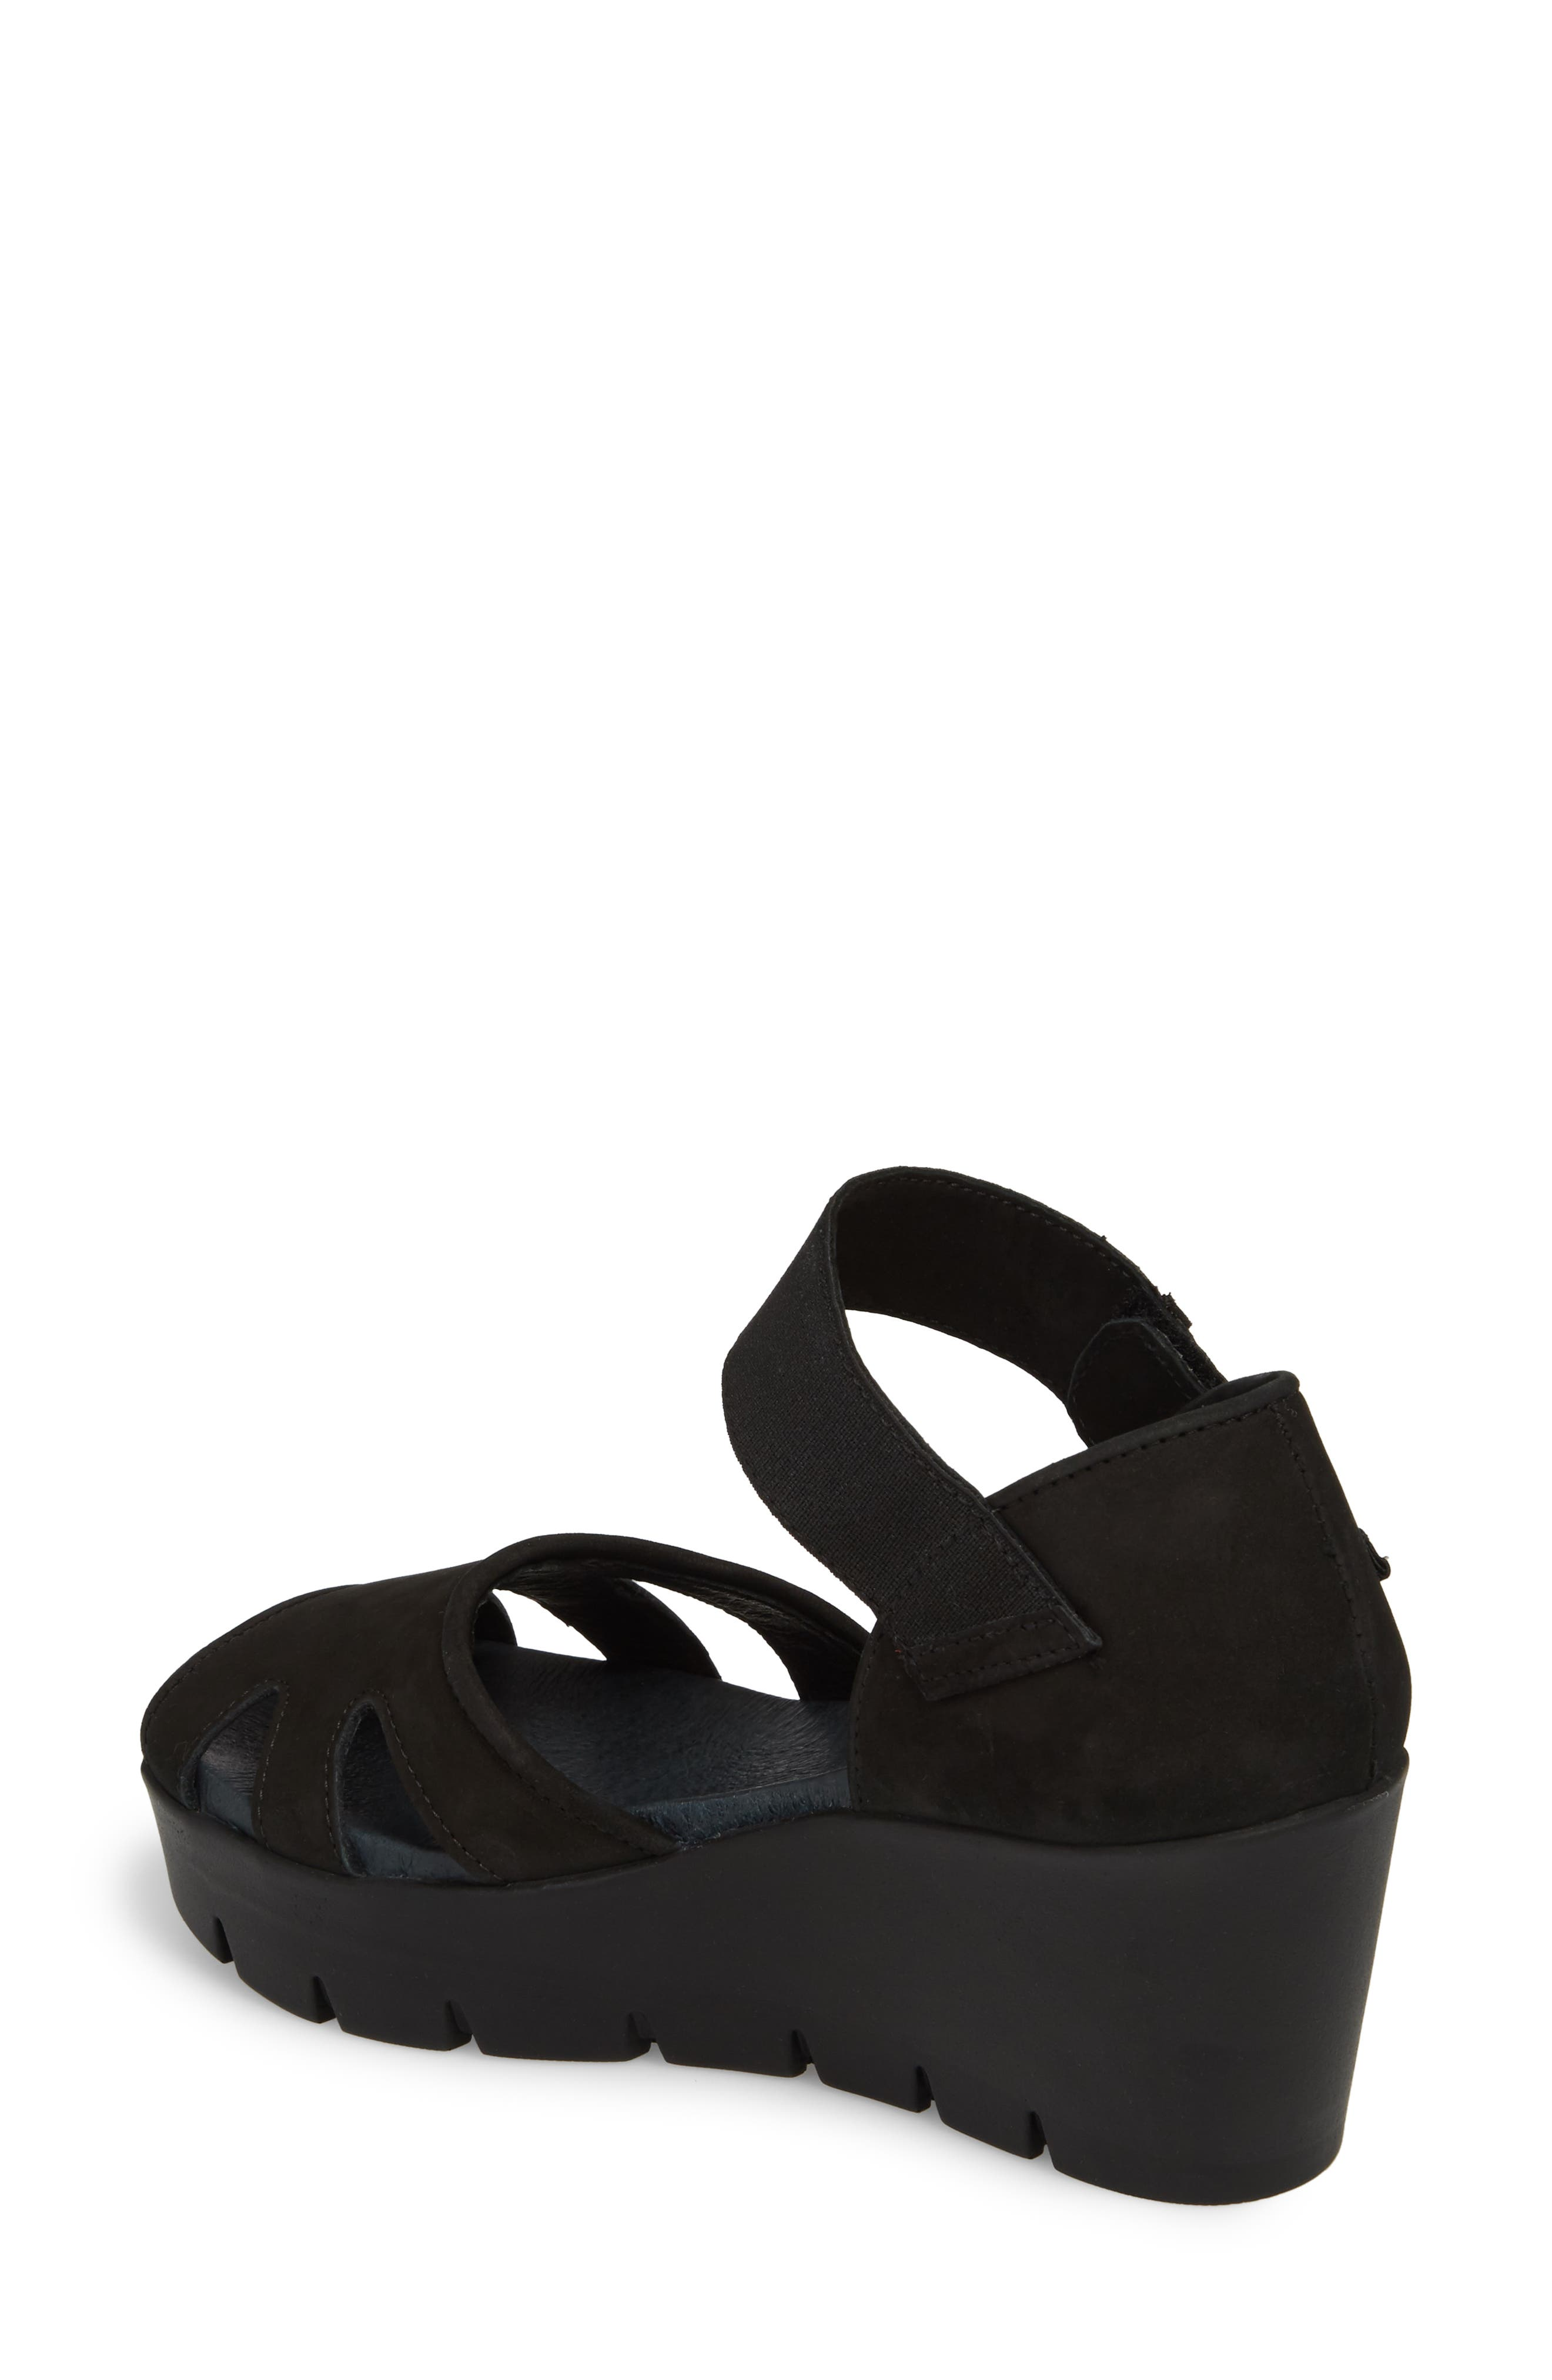 Sharon Platform Wedge Sandal,                             Alternate thumbnail 2, color,                             BLACK NUBUCK LEATHER